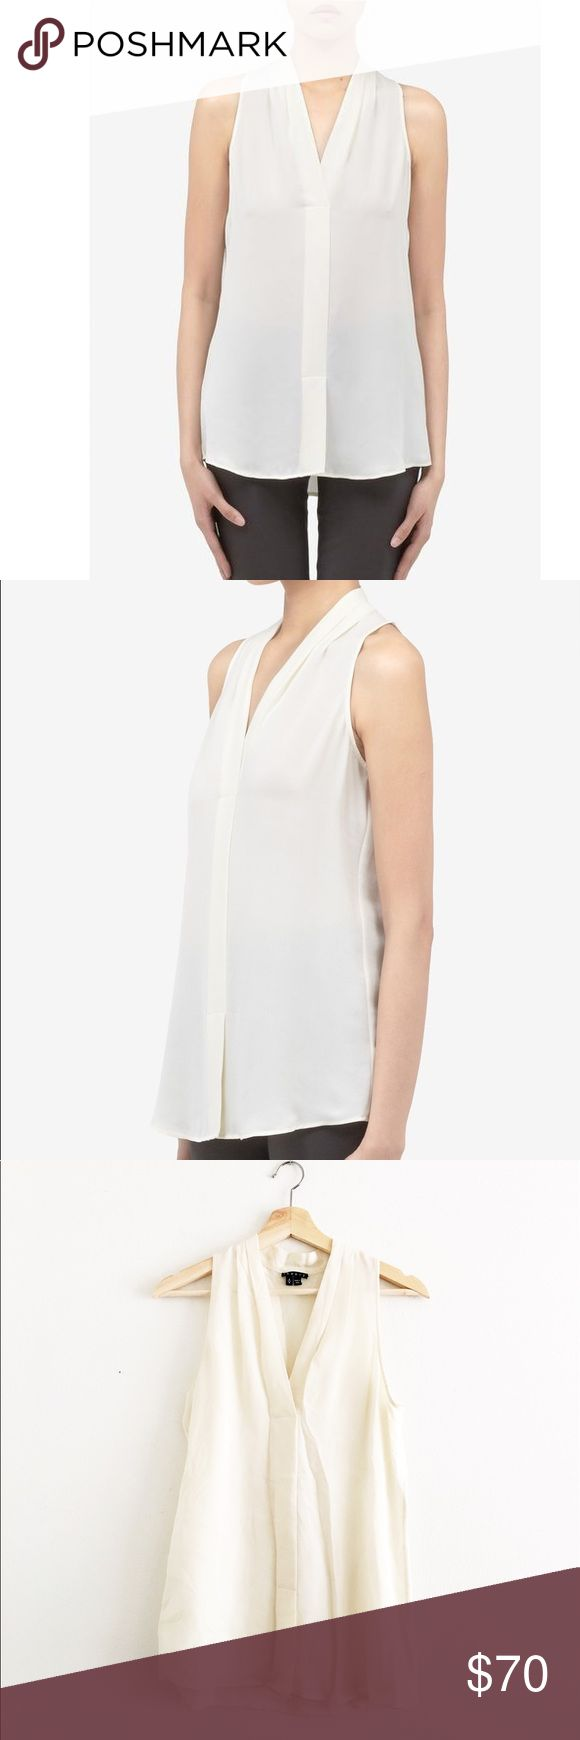 Theory Silk Blouse Super chic cream silk blouse from Theory. The perfect investment for your office wardrobe. You can also pair with a leather skirt for a night look. Faint makeup mark on the back left shoulder area - will come out with dry cleaning. Theory Tops Blouses